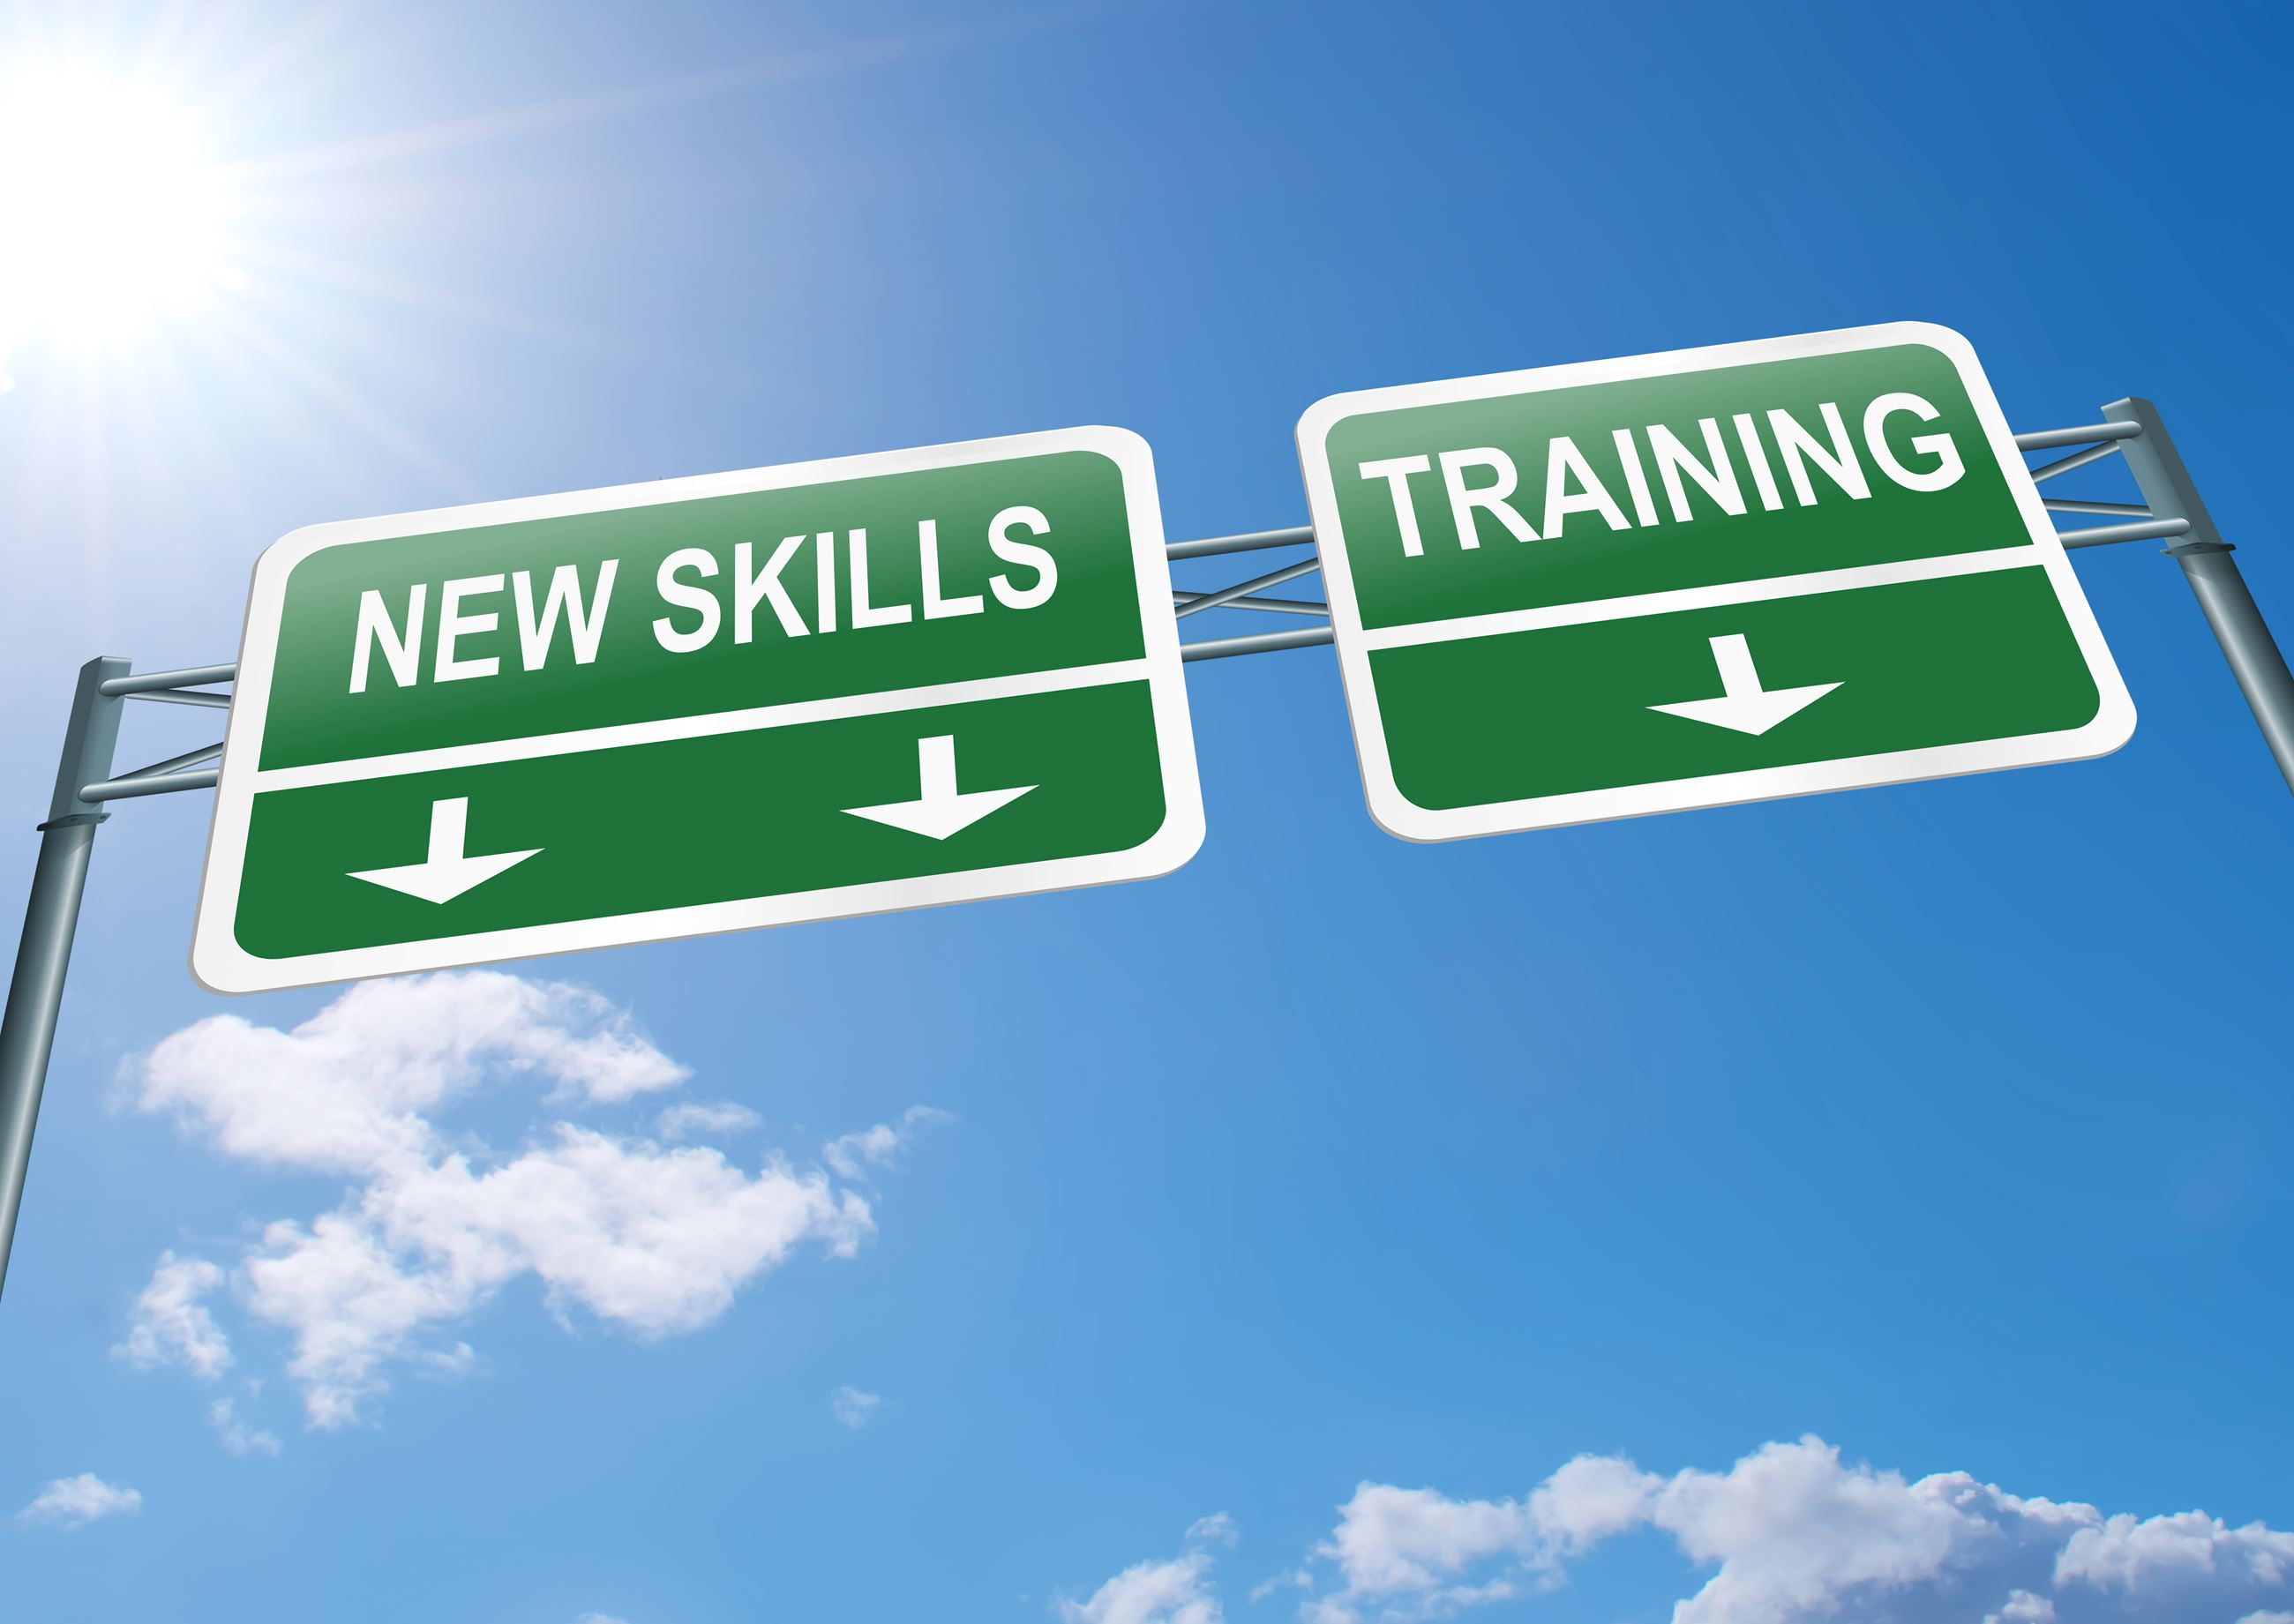 skills and training signs